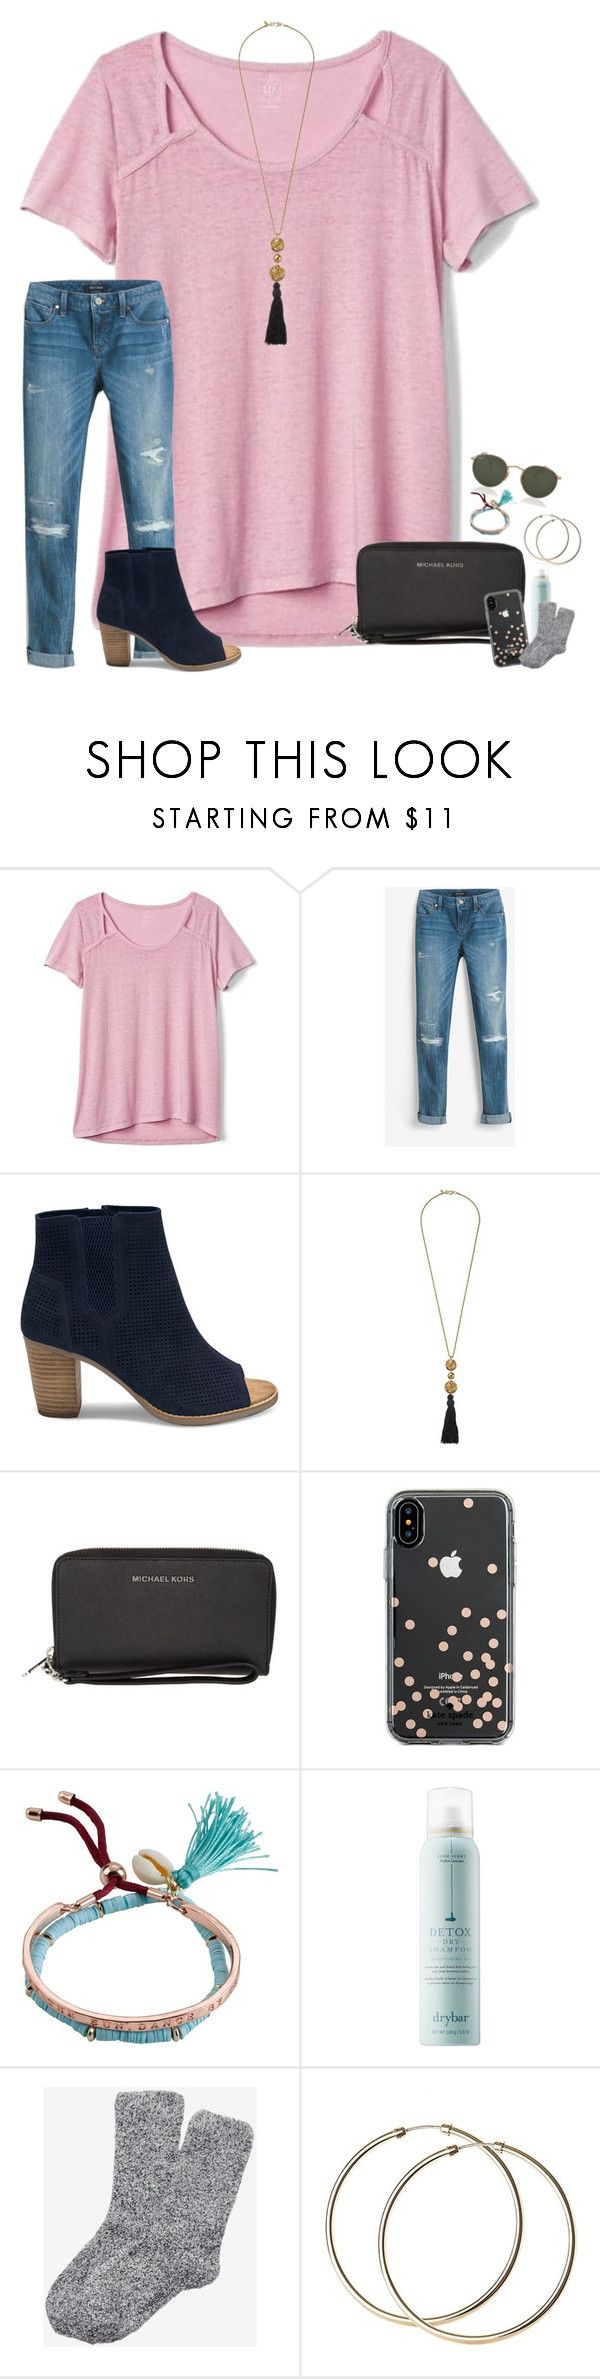 """""""~we facetimed for over 4 hours:)~"""" by taylortinsley ❤ liked on Polyvore featuring Gap, White House Black Market, TOMS, Kenneth Jay Lane, MICHAEL Michael Kors, Kate Spade, Billabong, Drybar, Express and Ray-Ban"""